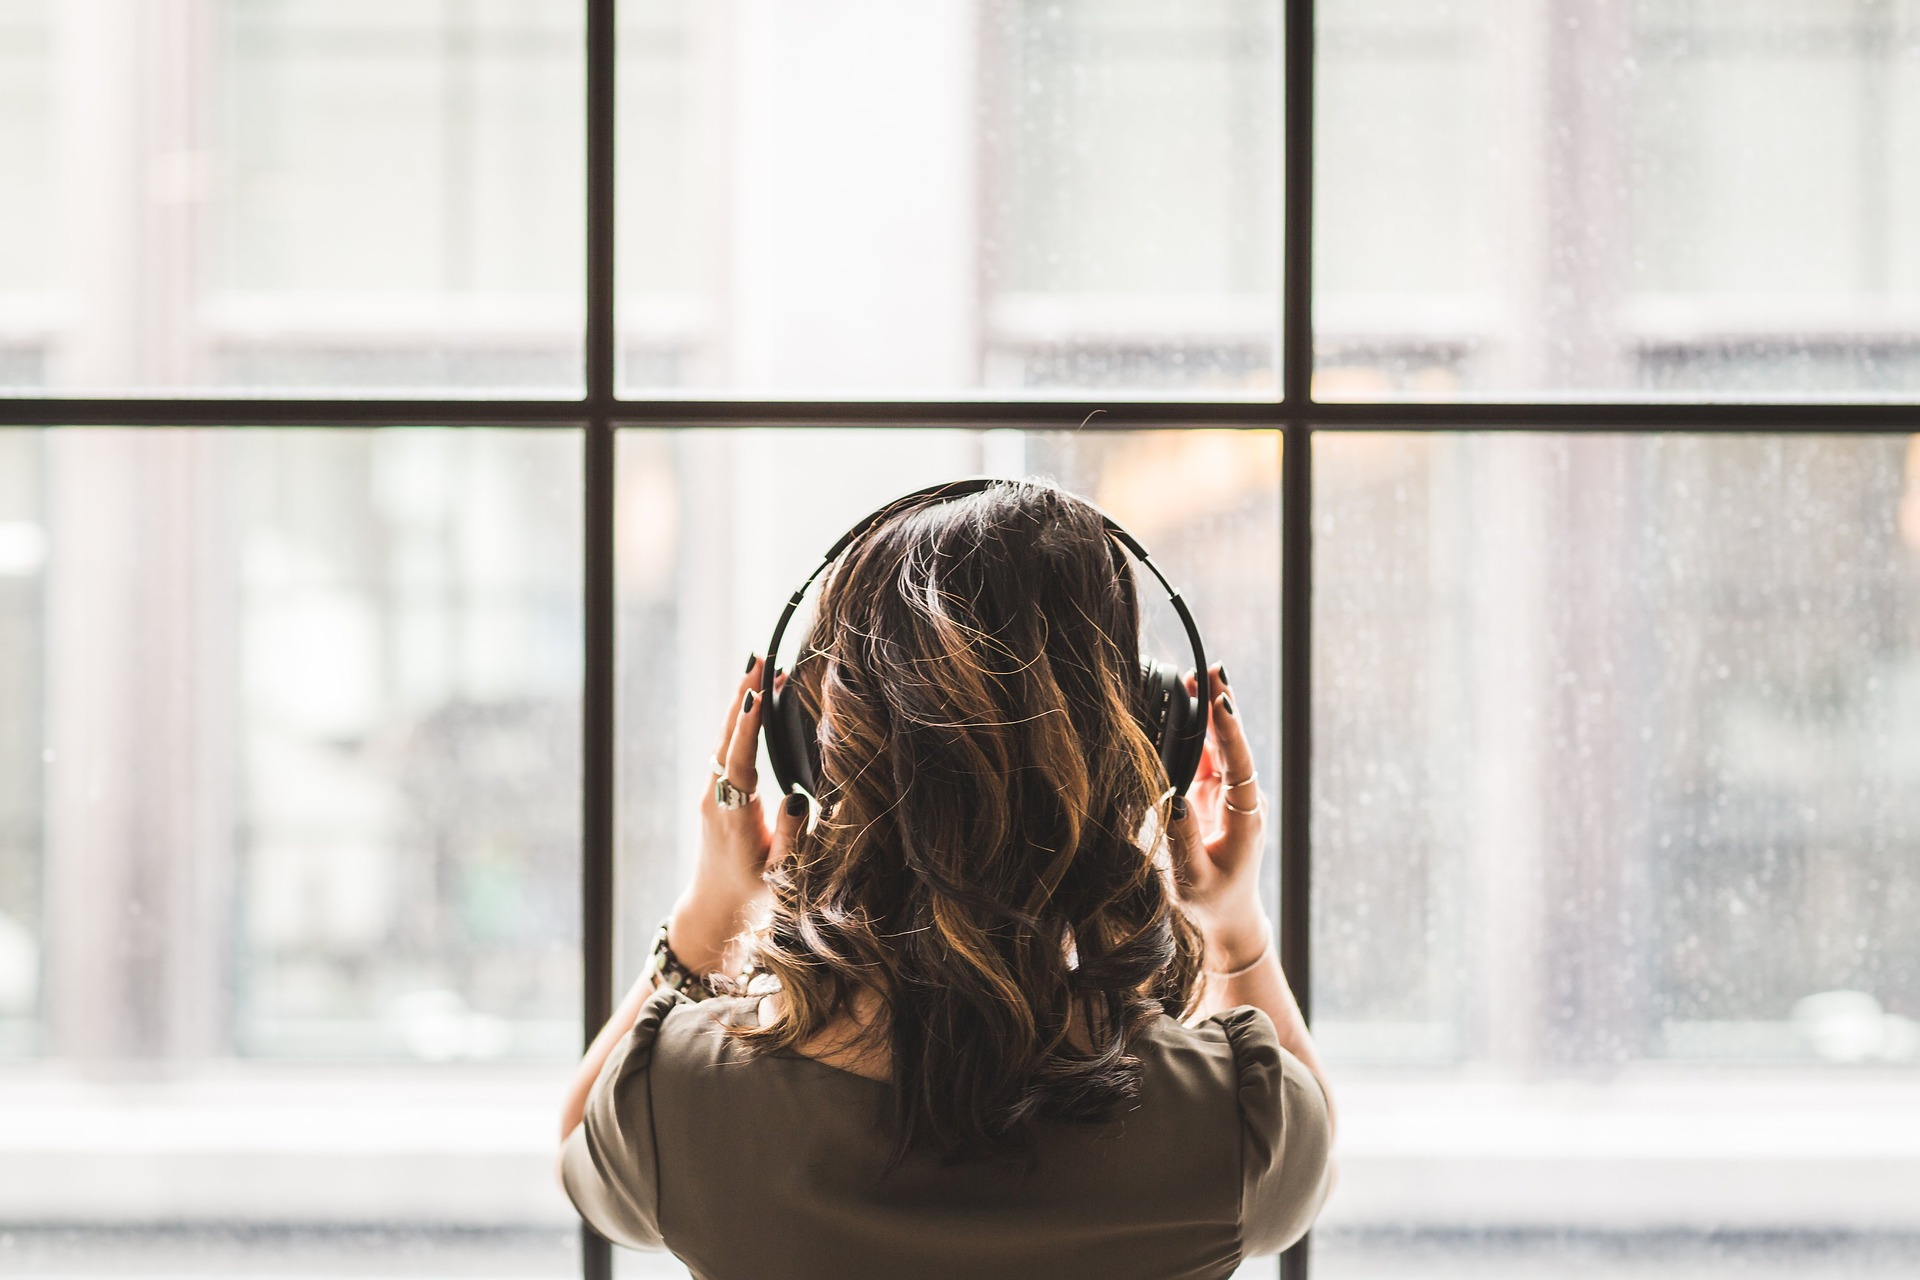 Podcasts in French